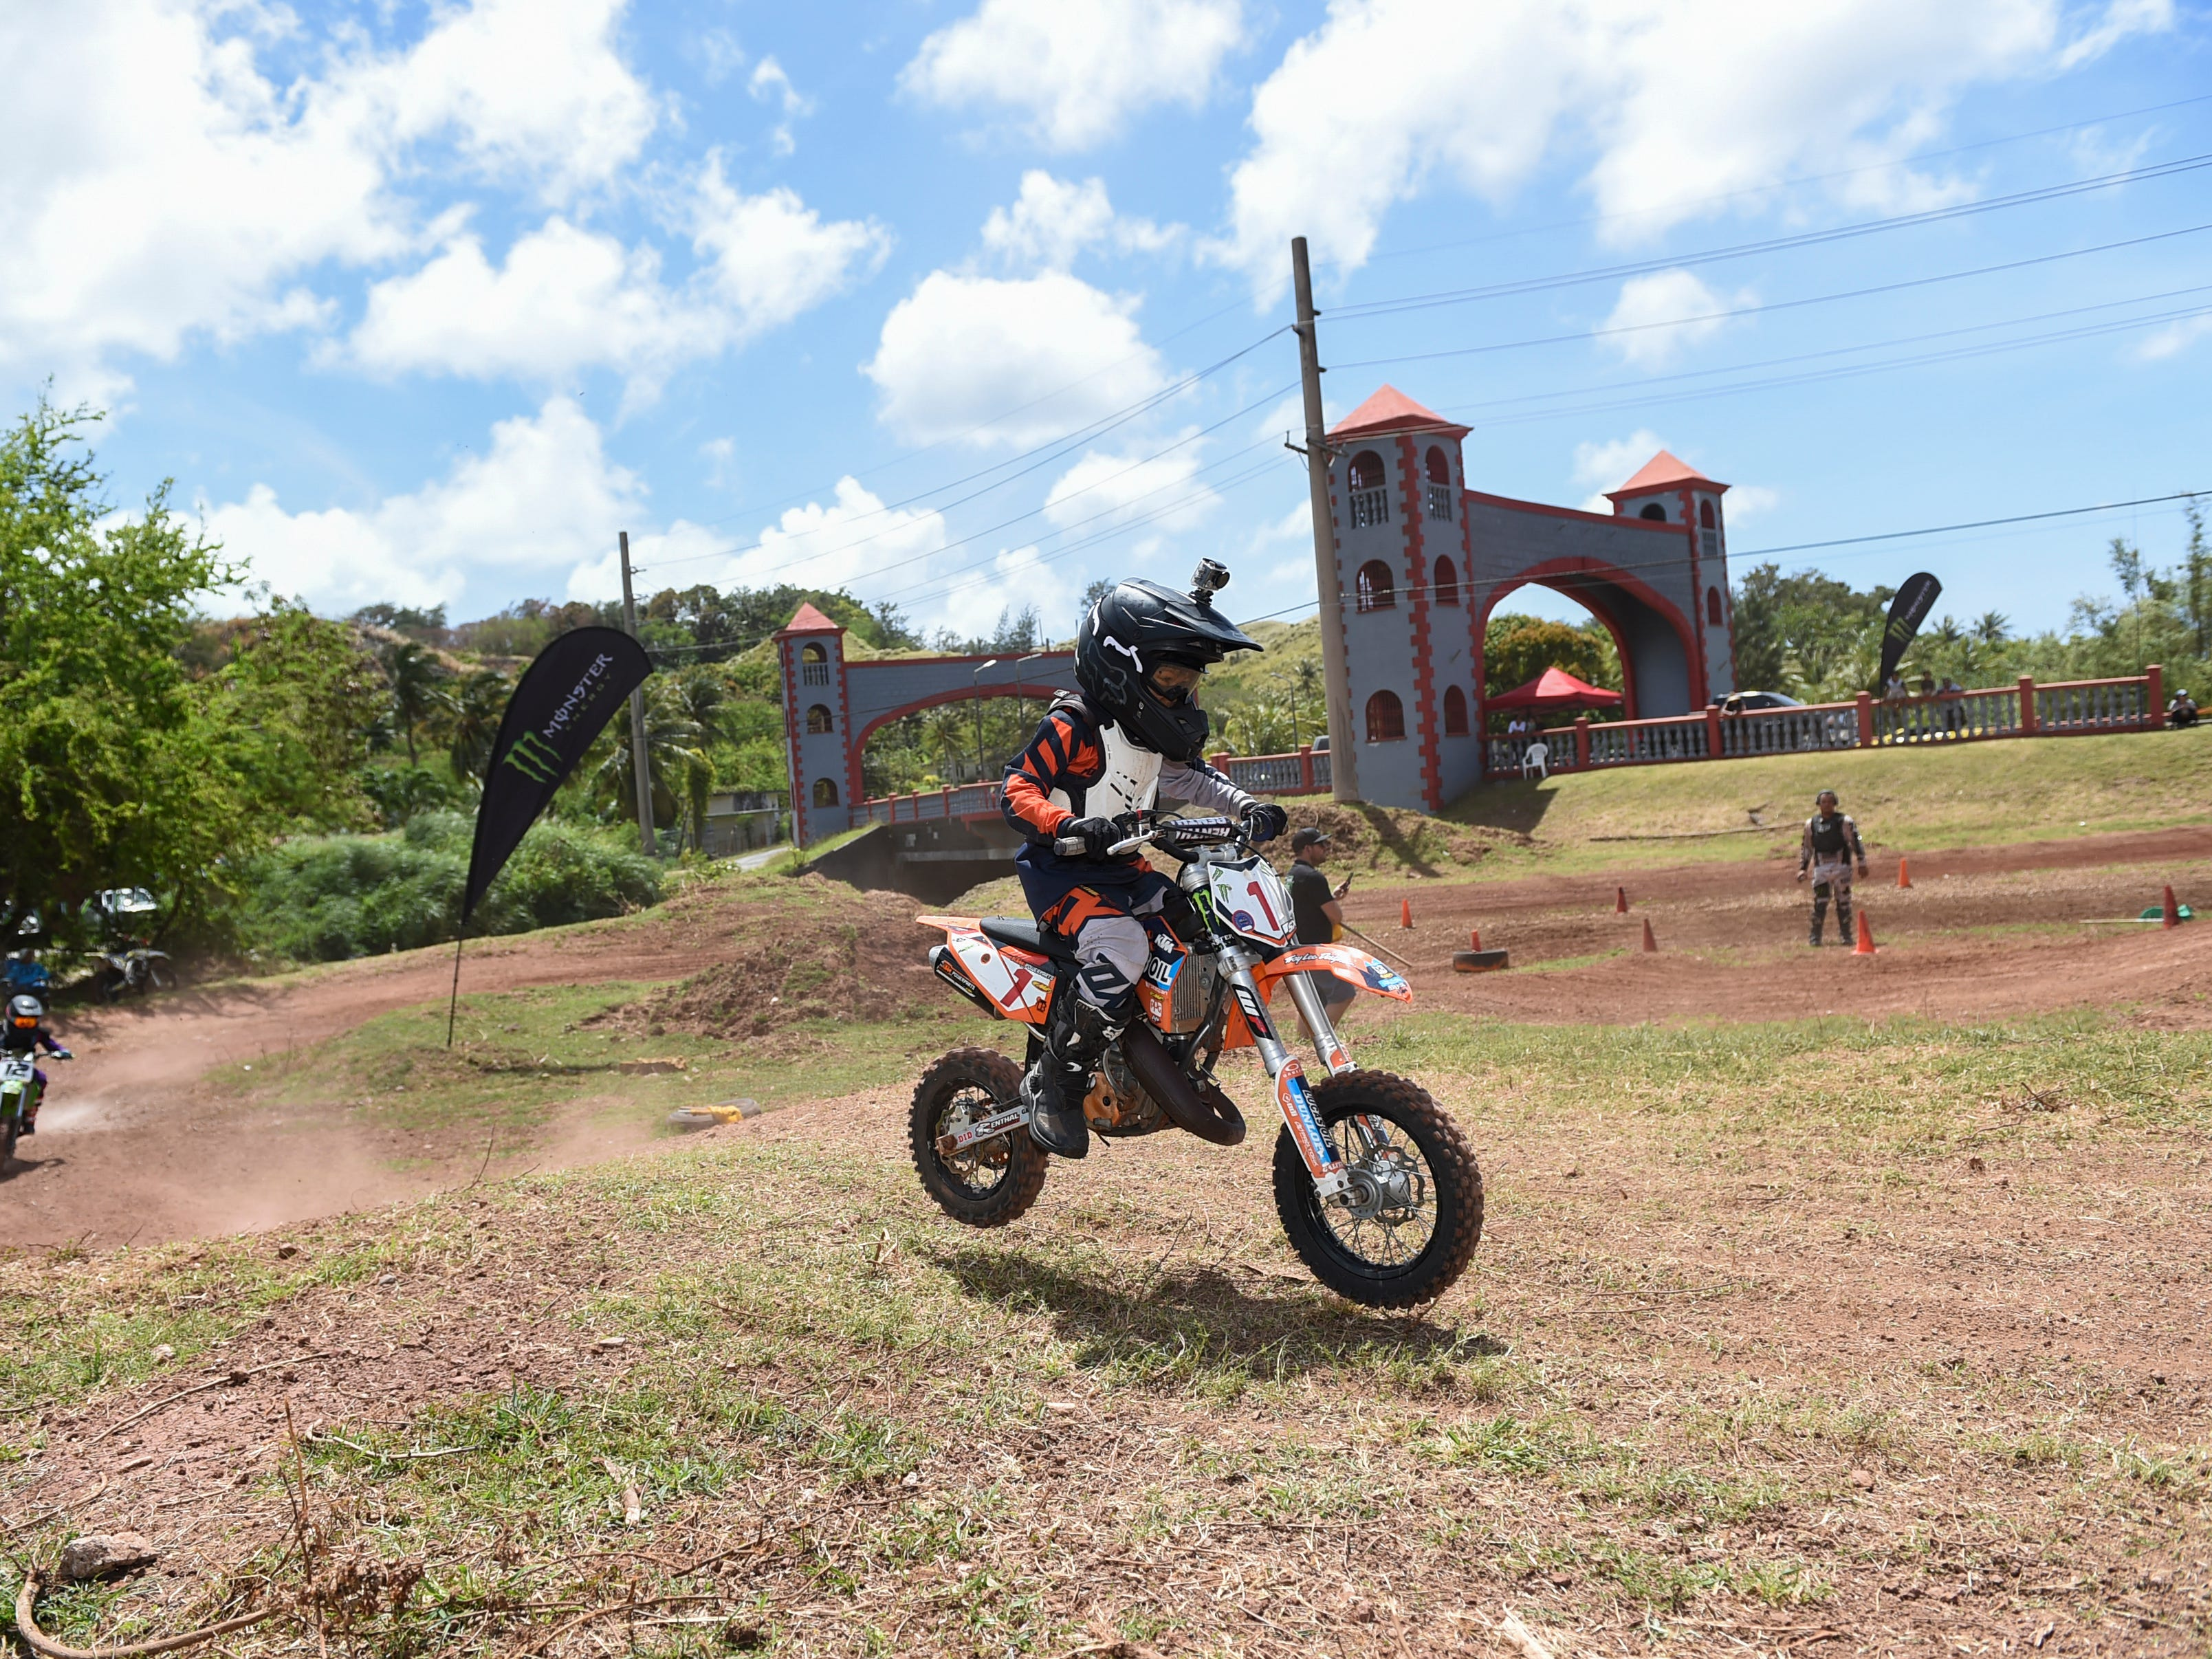 John Aguon (1) competes in a 65cc motocross race during the Guam History and Chamorro Heritage Day Festival 2019 at Umatac Bay Park, March 10, 2019.